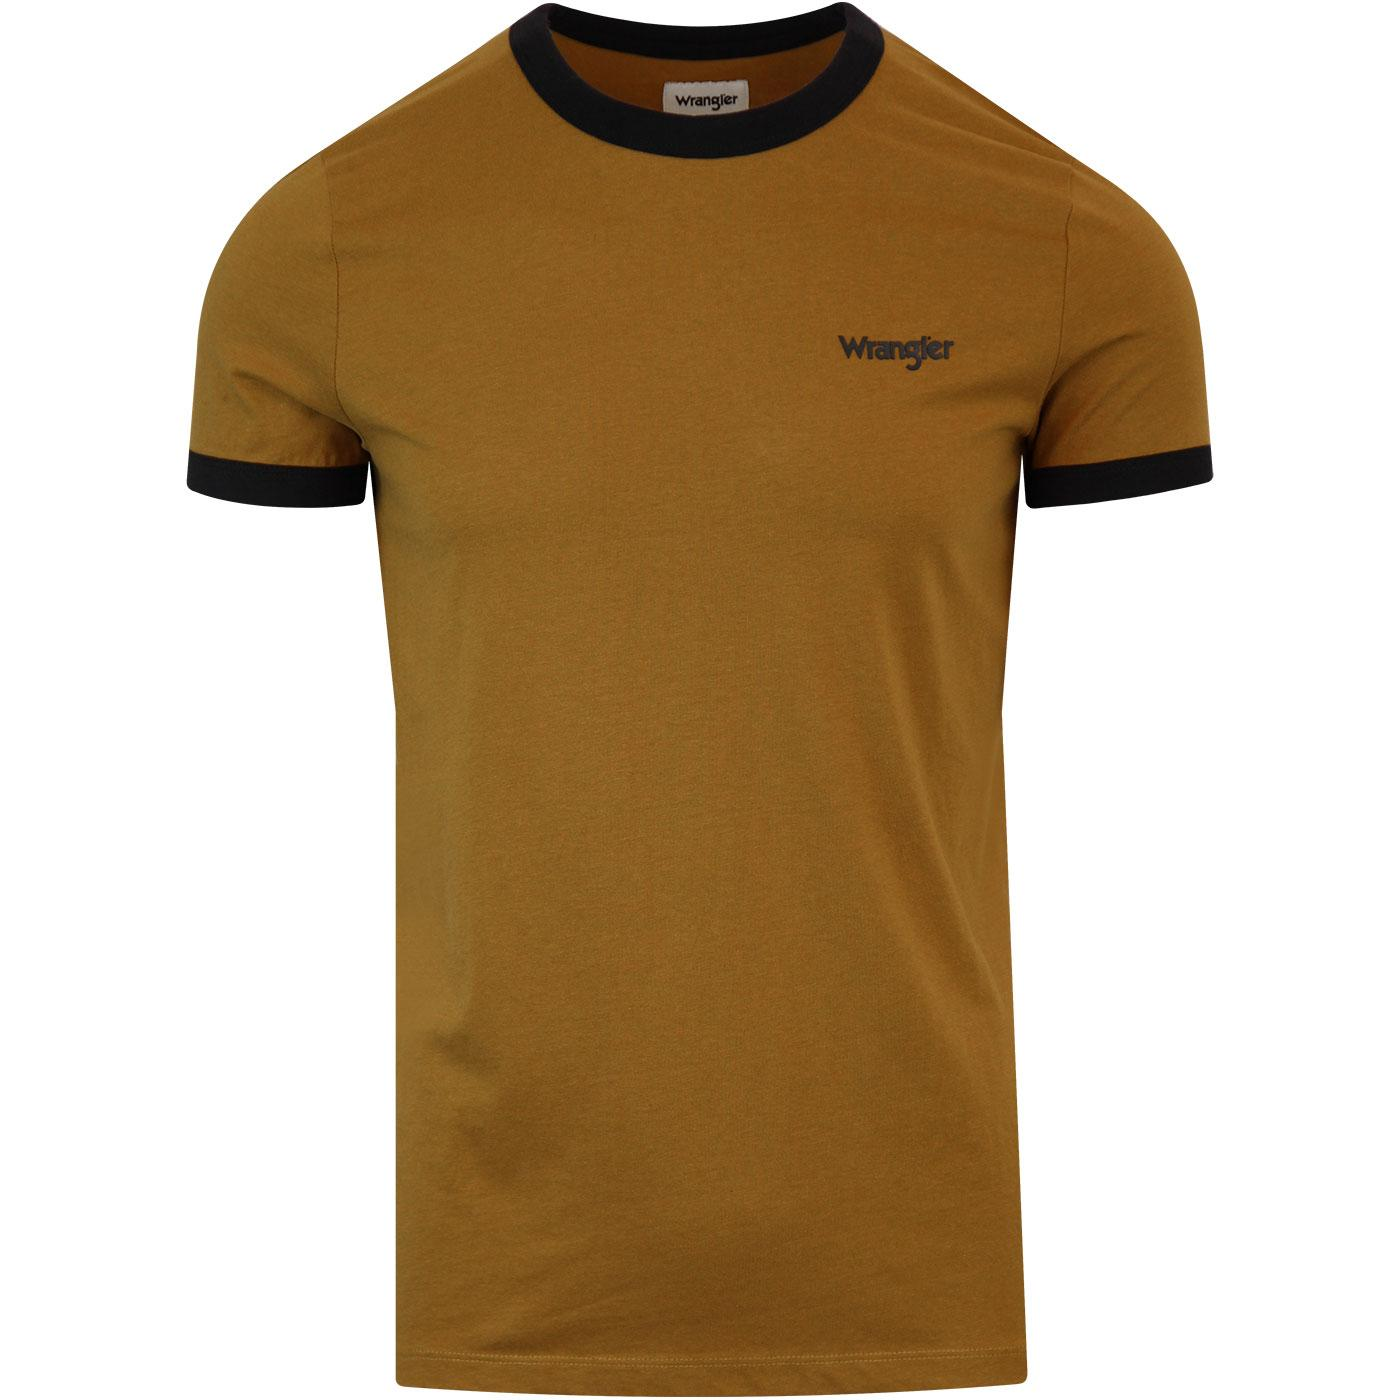 WRANGLER Retro 1970s Ringer T-shirt (Golden Brown)